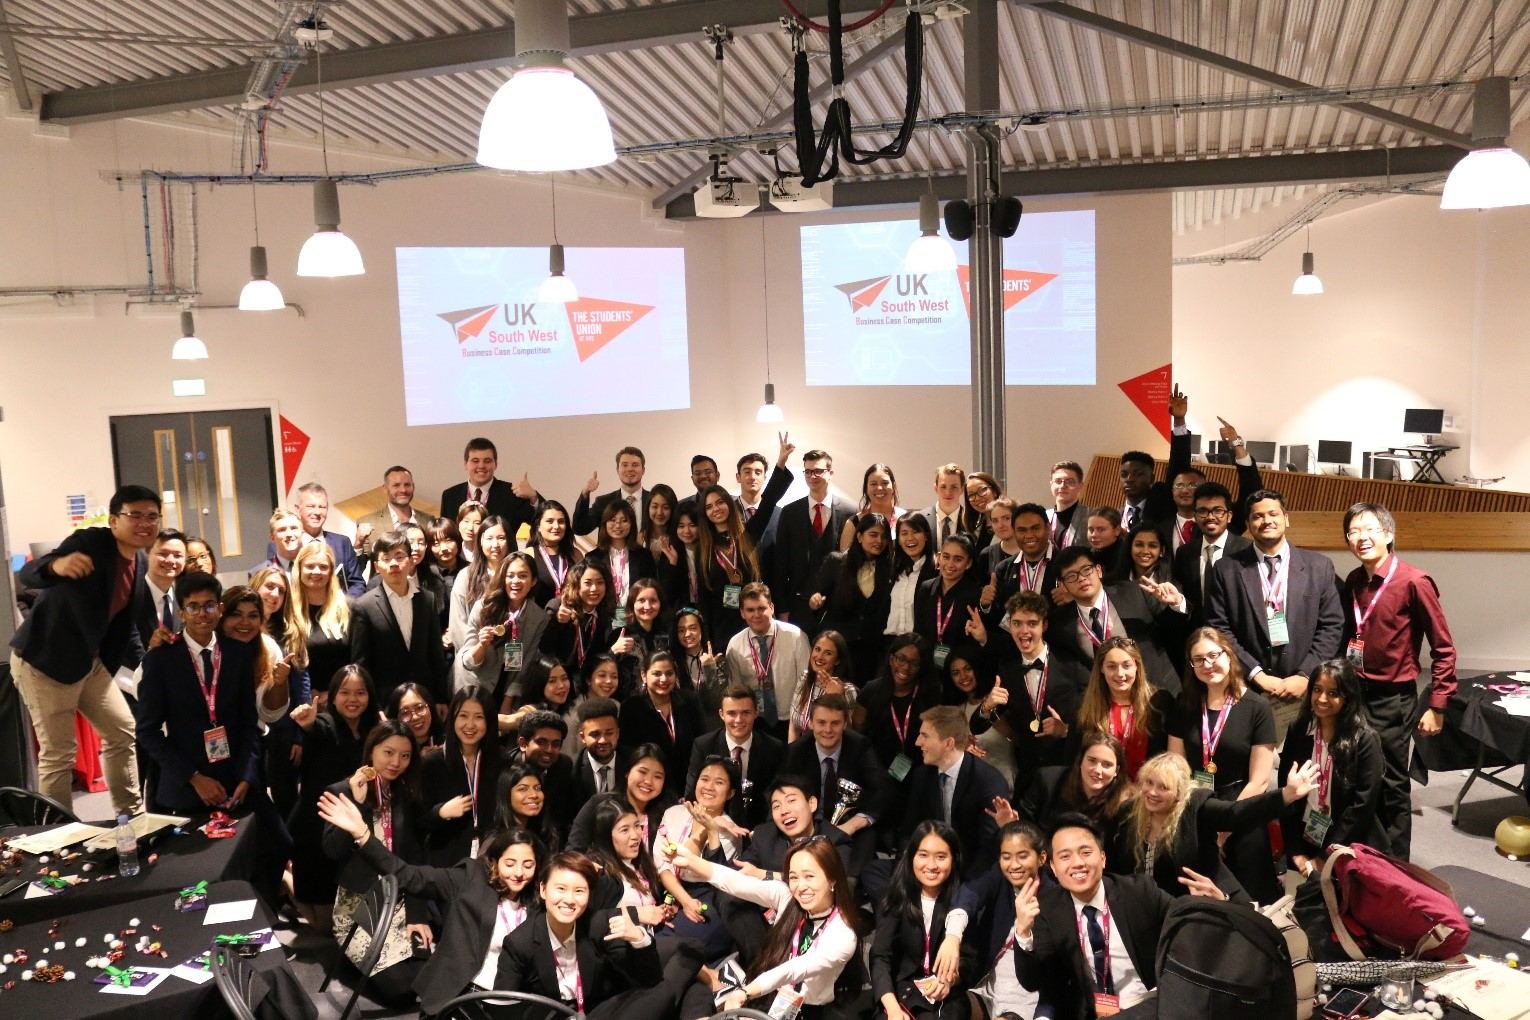 UK South West Business Competition 2018 | The Students